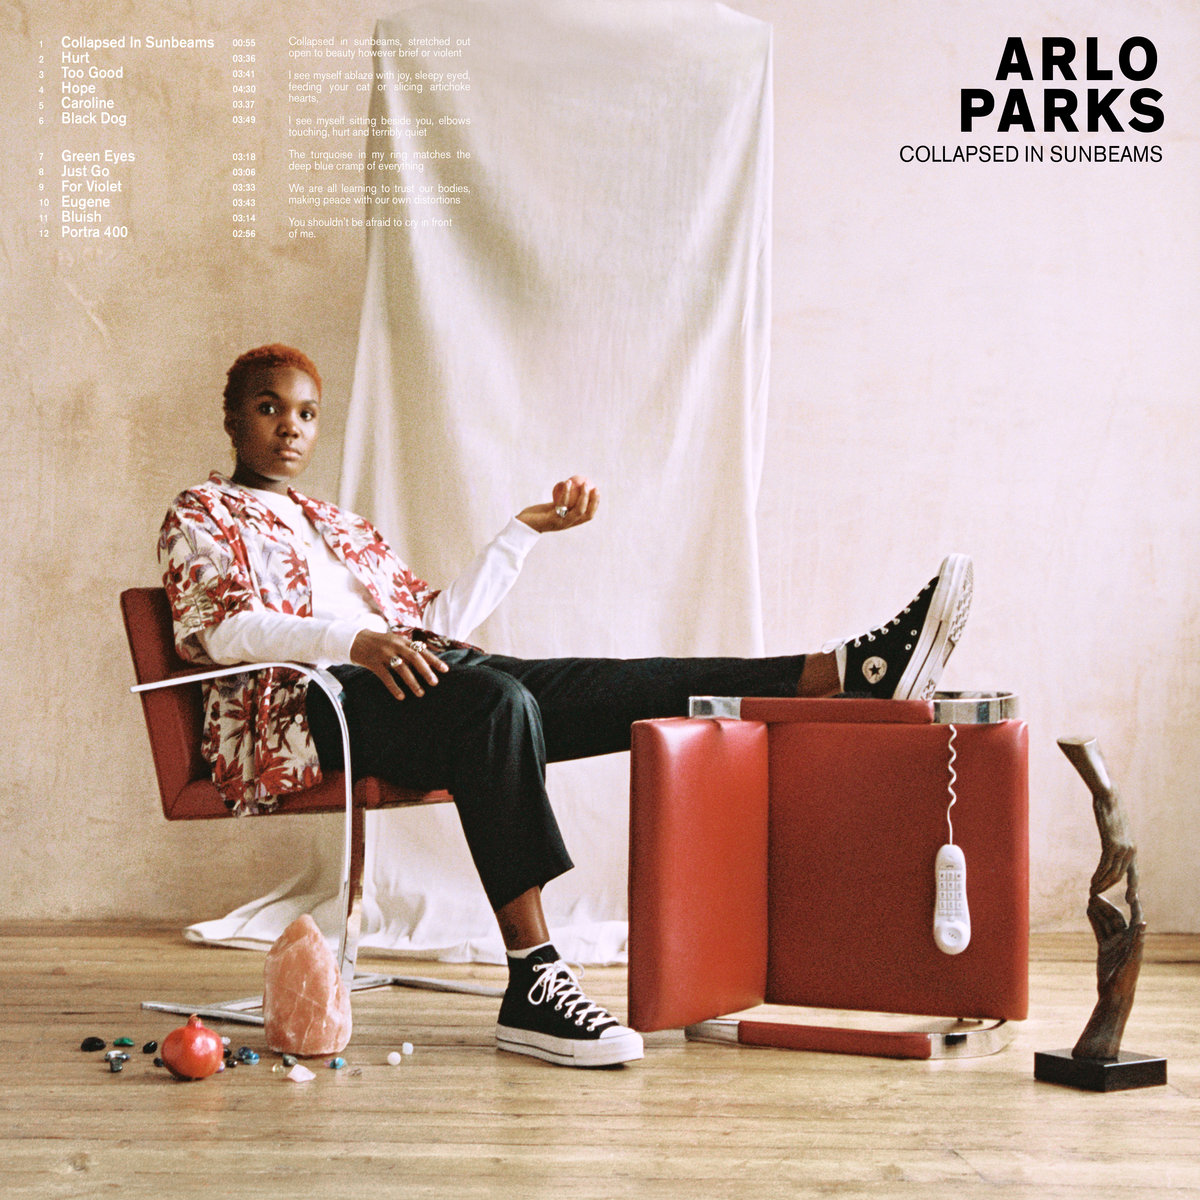 Album cover art for Collapsed in Sunbeams by Arlo Park